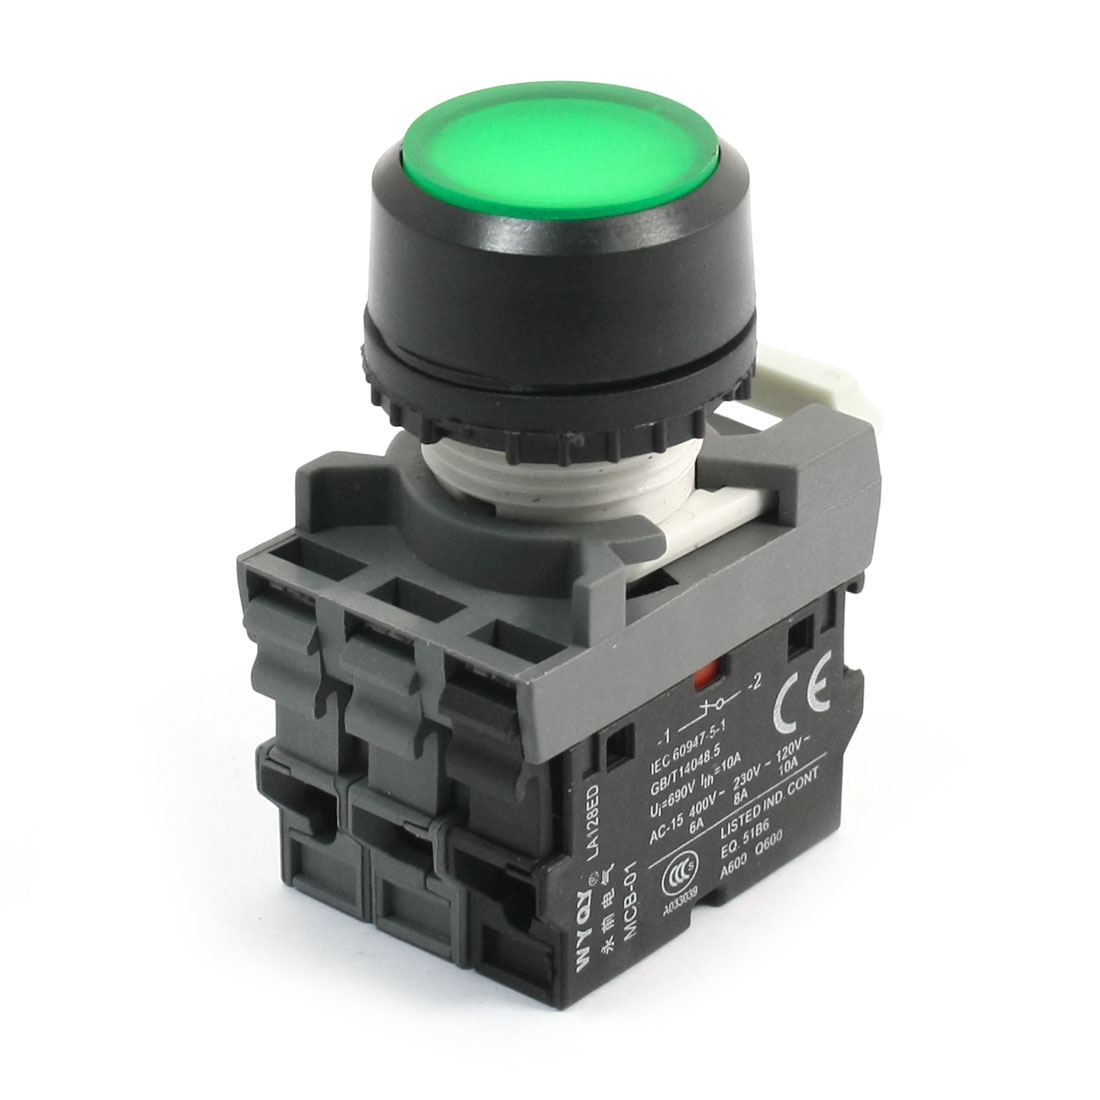 690V 15A DPST Self-locking Green Lamp Round Head Operator Push Button Switch